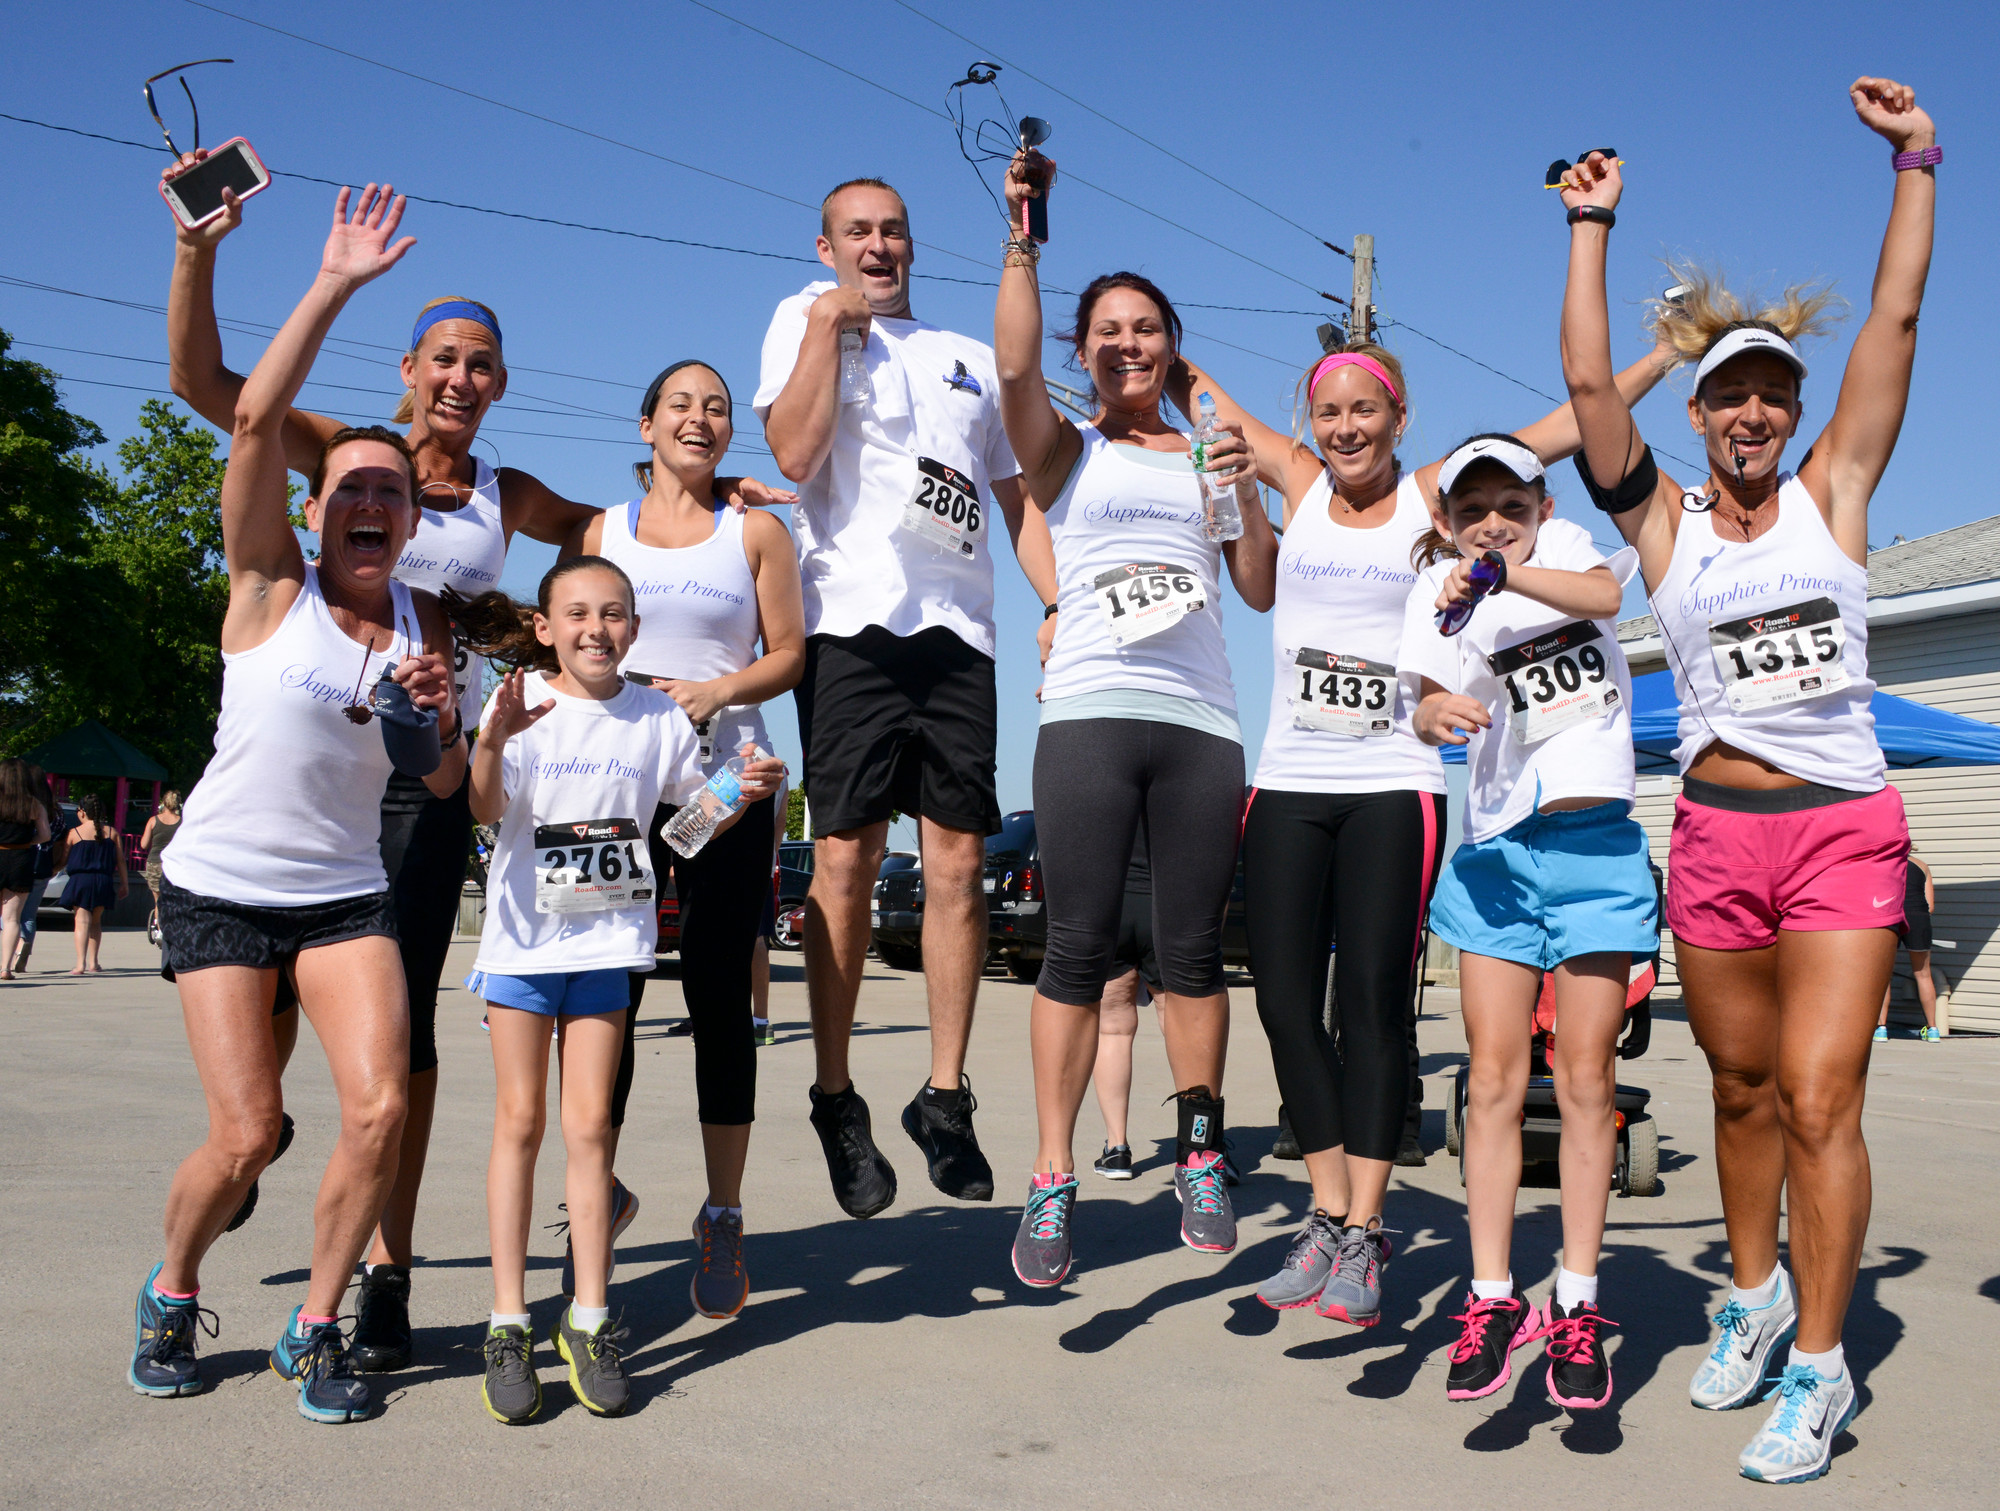 Runners from Team Sapphire Princess of Freeport were all pumped up at the Gubelli 5k in Island Park.